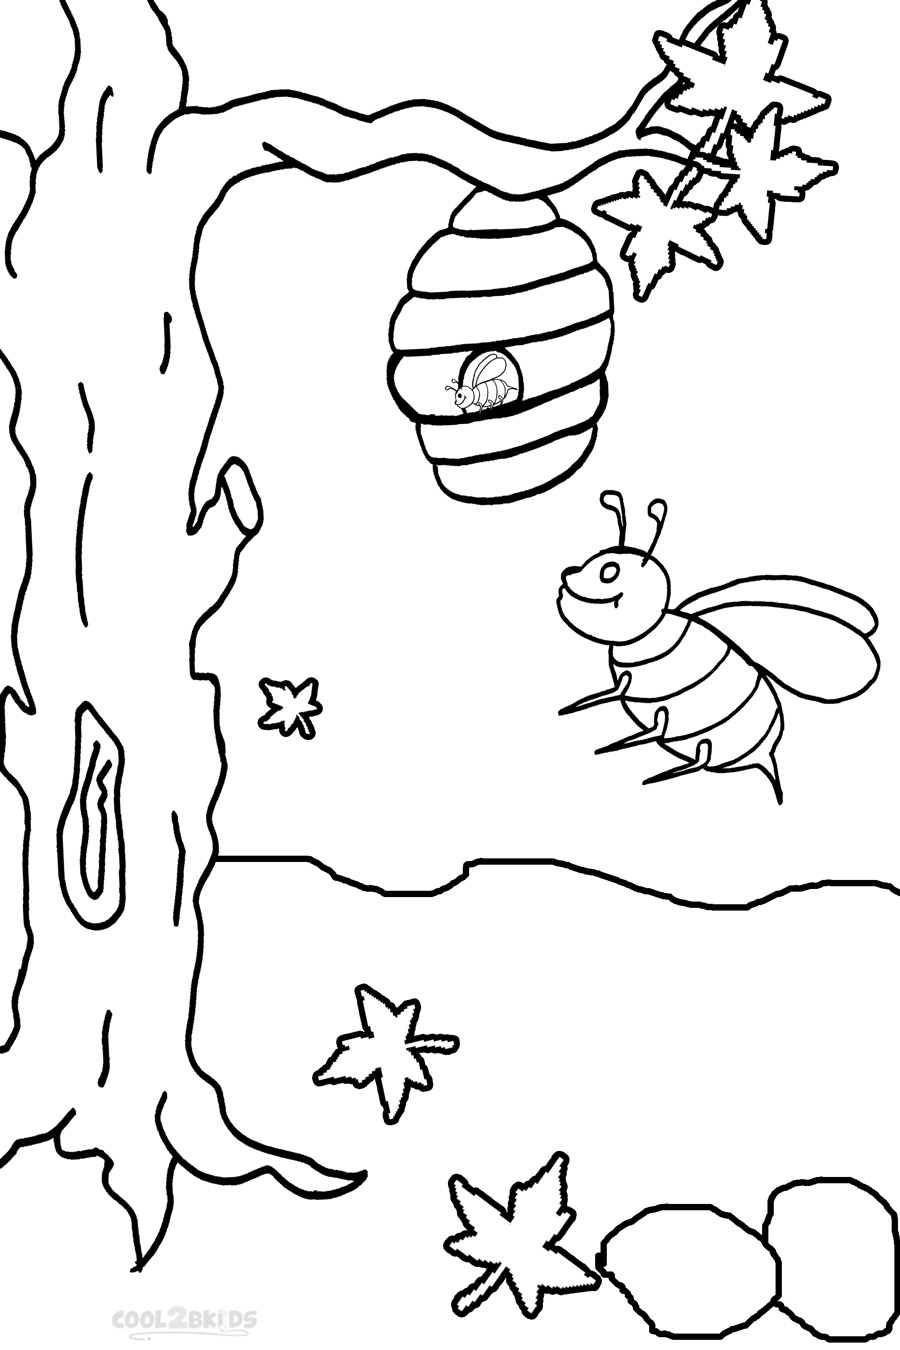 coloring page of bee printable bumble bee coloring pages for kids cool2bkids of coloring bee page